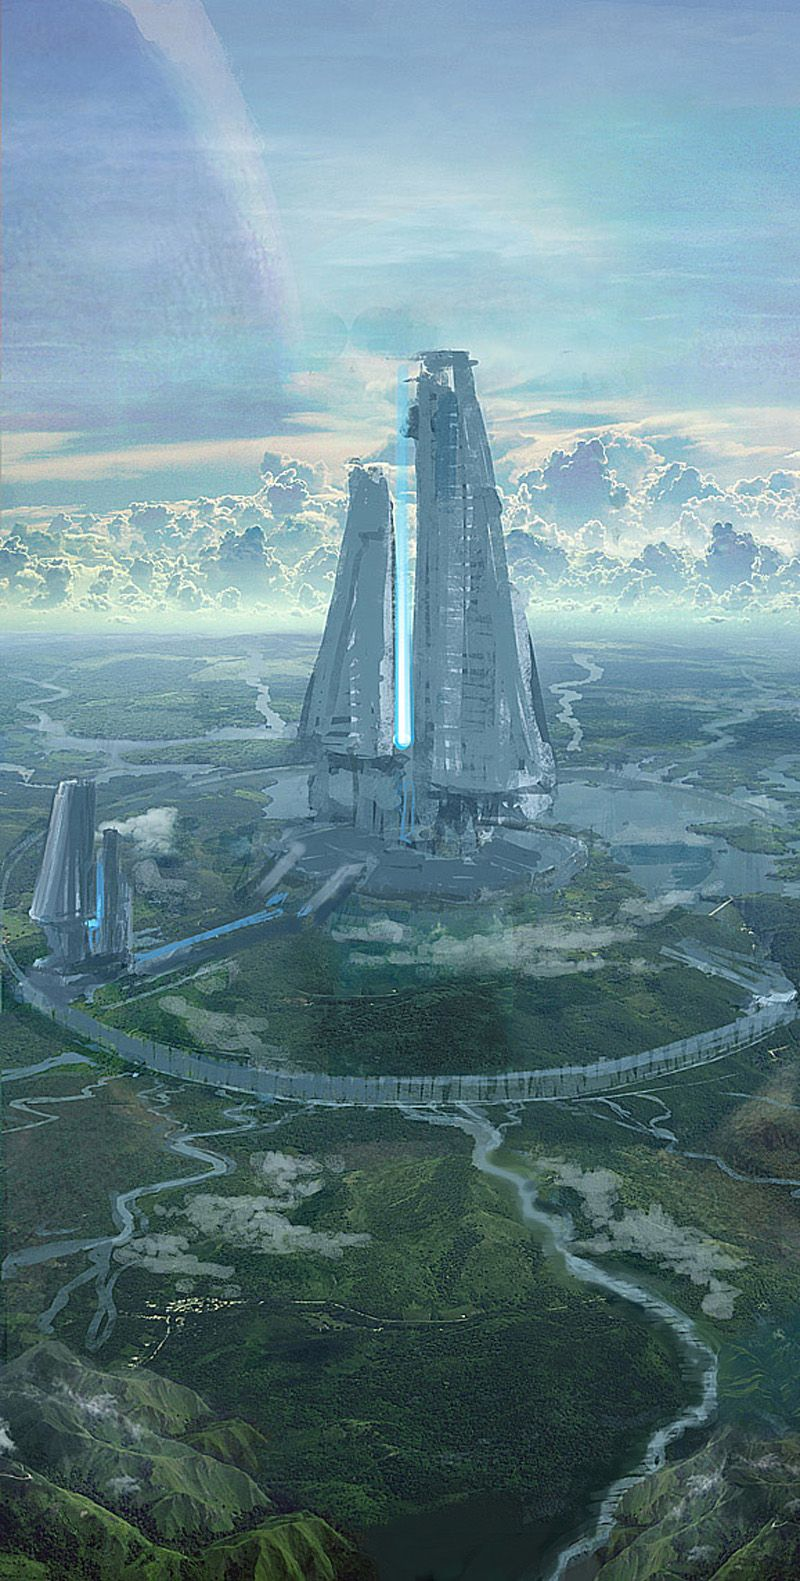 halo-related art of mike hill